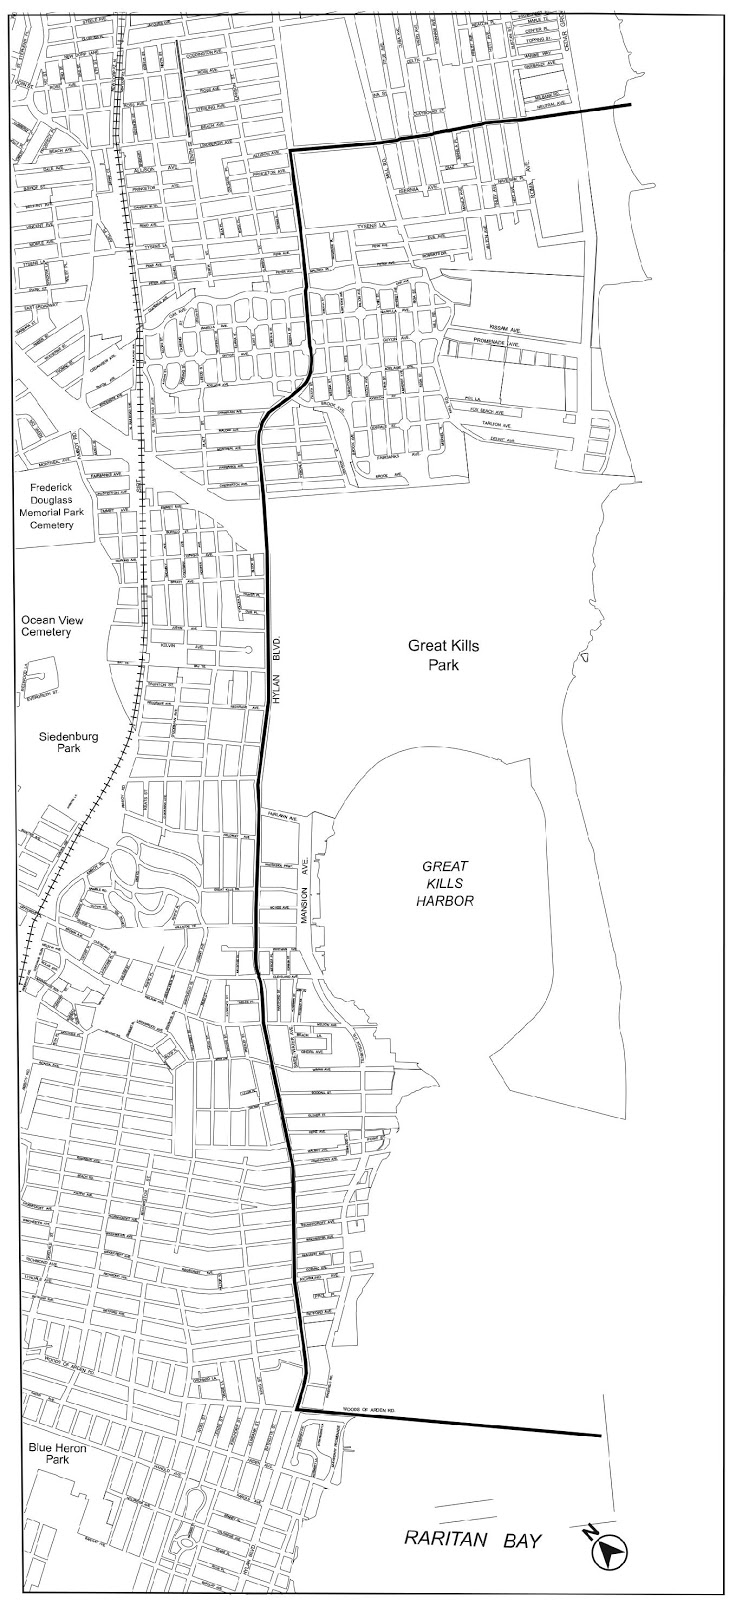 Zoning Resolutions Chapter 4 - Special Regulations Applying in Flood Hazard Areas Appendix A.7